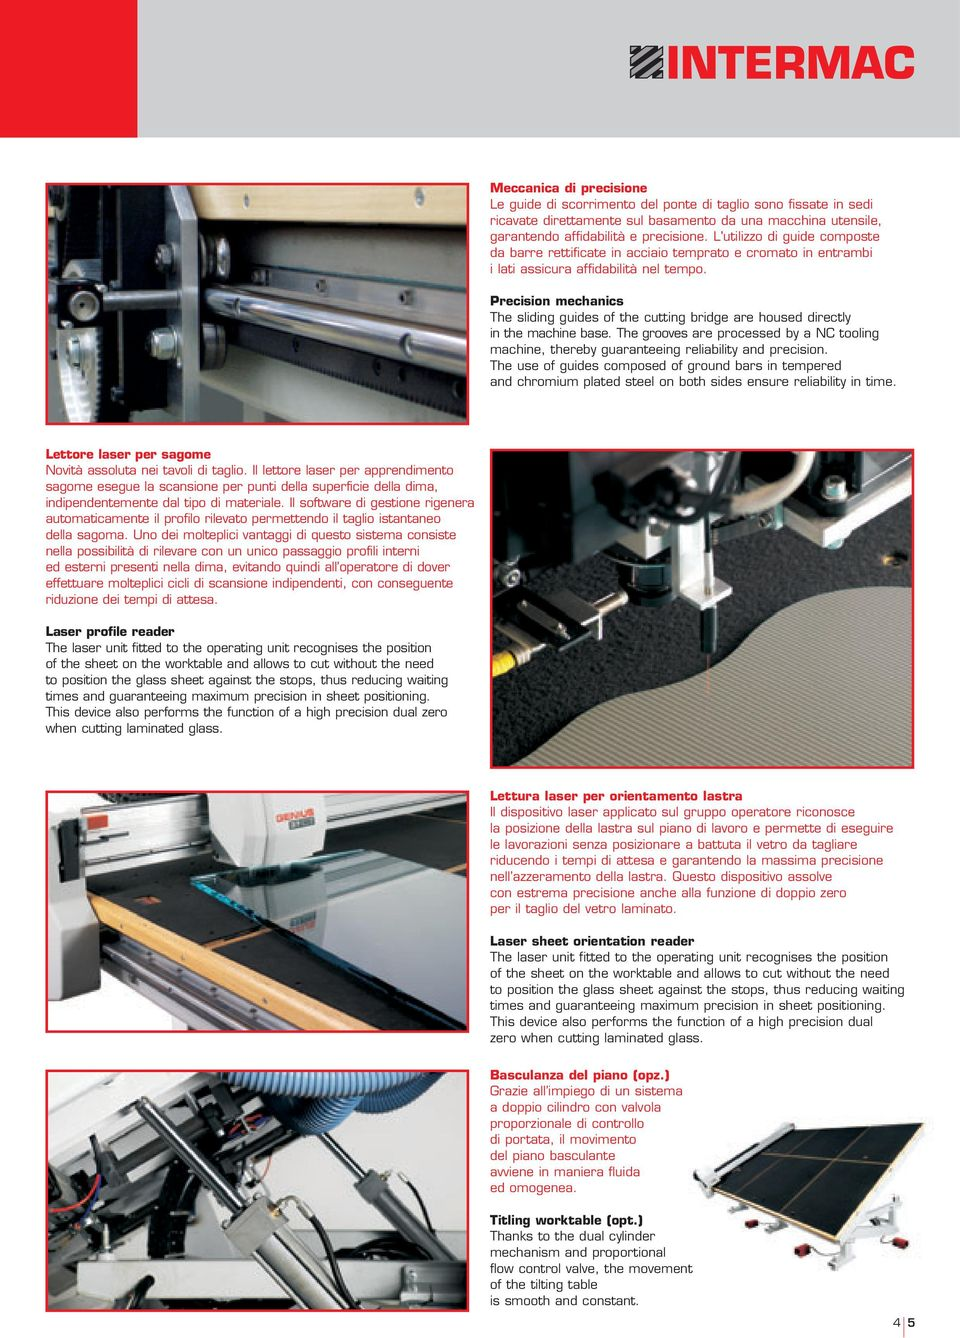 Precision mechanics The sliding guides of the cutting bridge are housed directly in the machine base. The grooves are processed by a NC tooling machine, thereby guaranteeing reliability and precision.